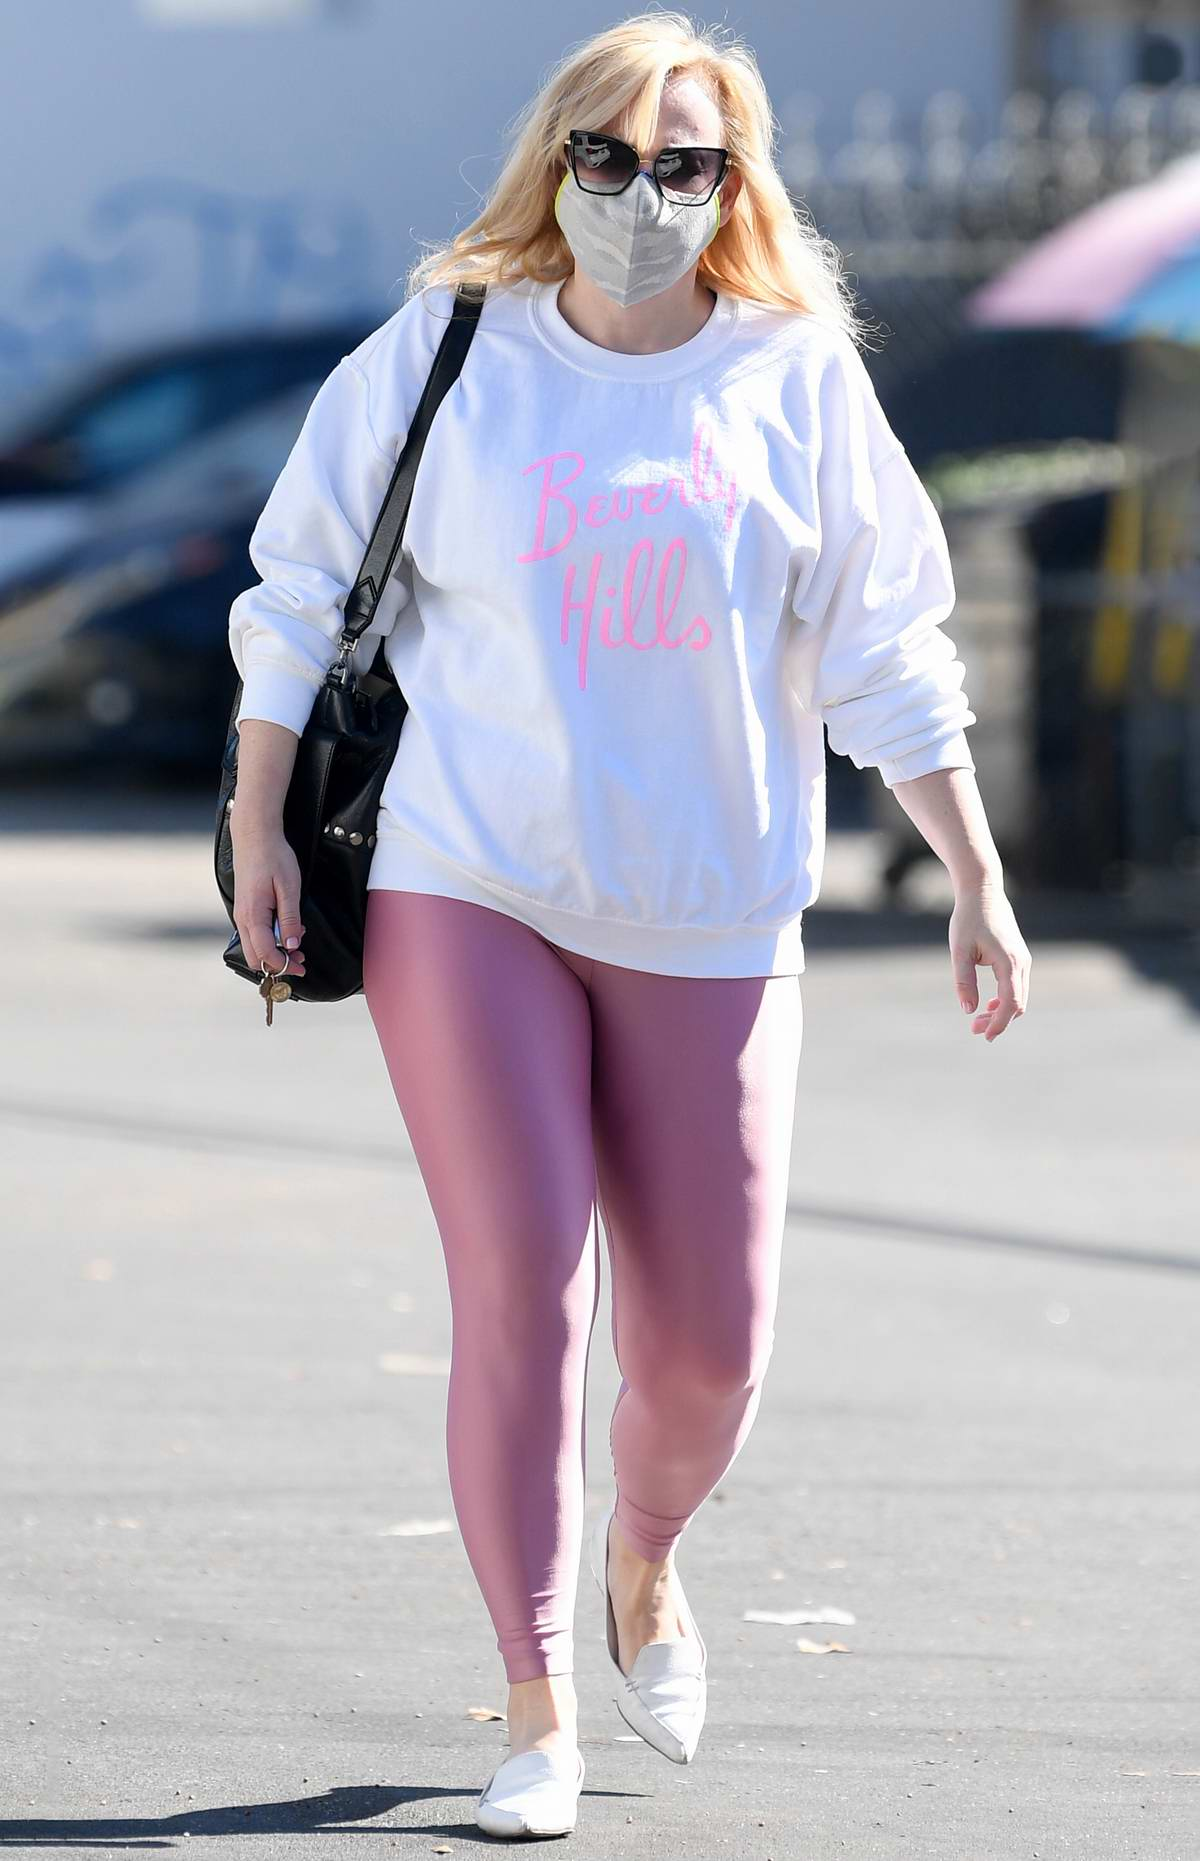 Rebel Wilson dons a white sweatshirt and pink leggings while stepping out in Los Angeles